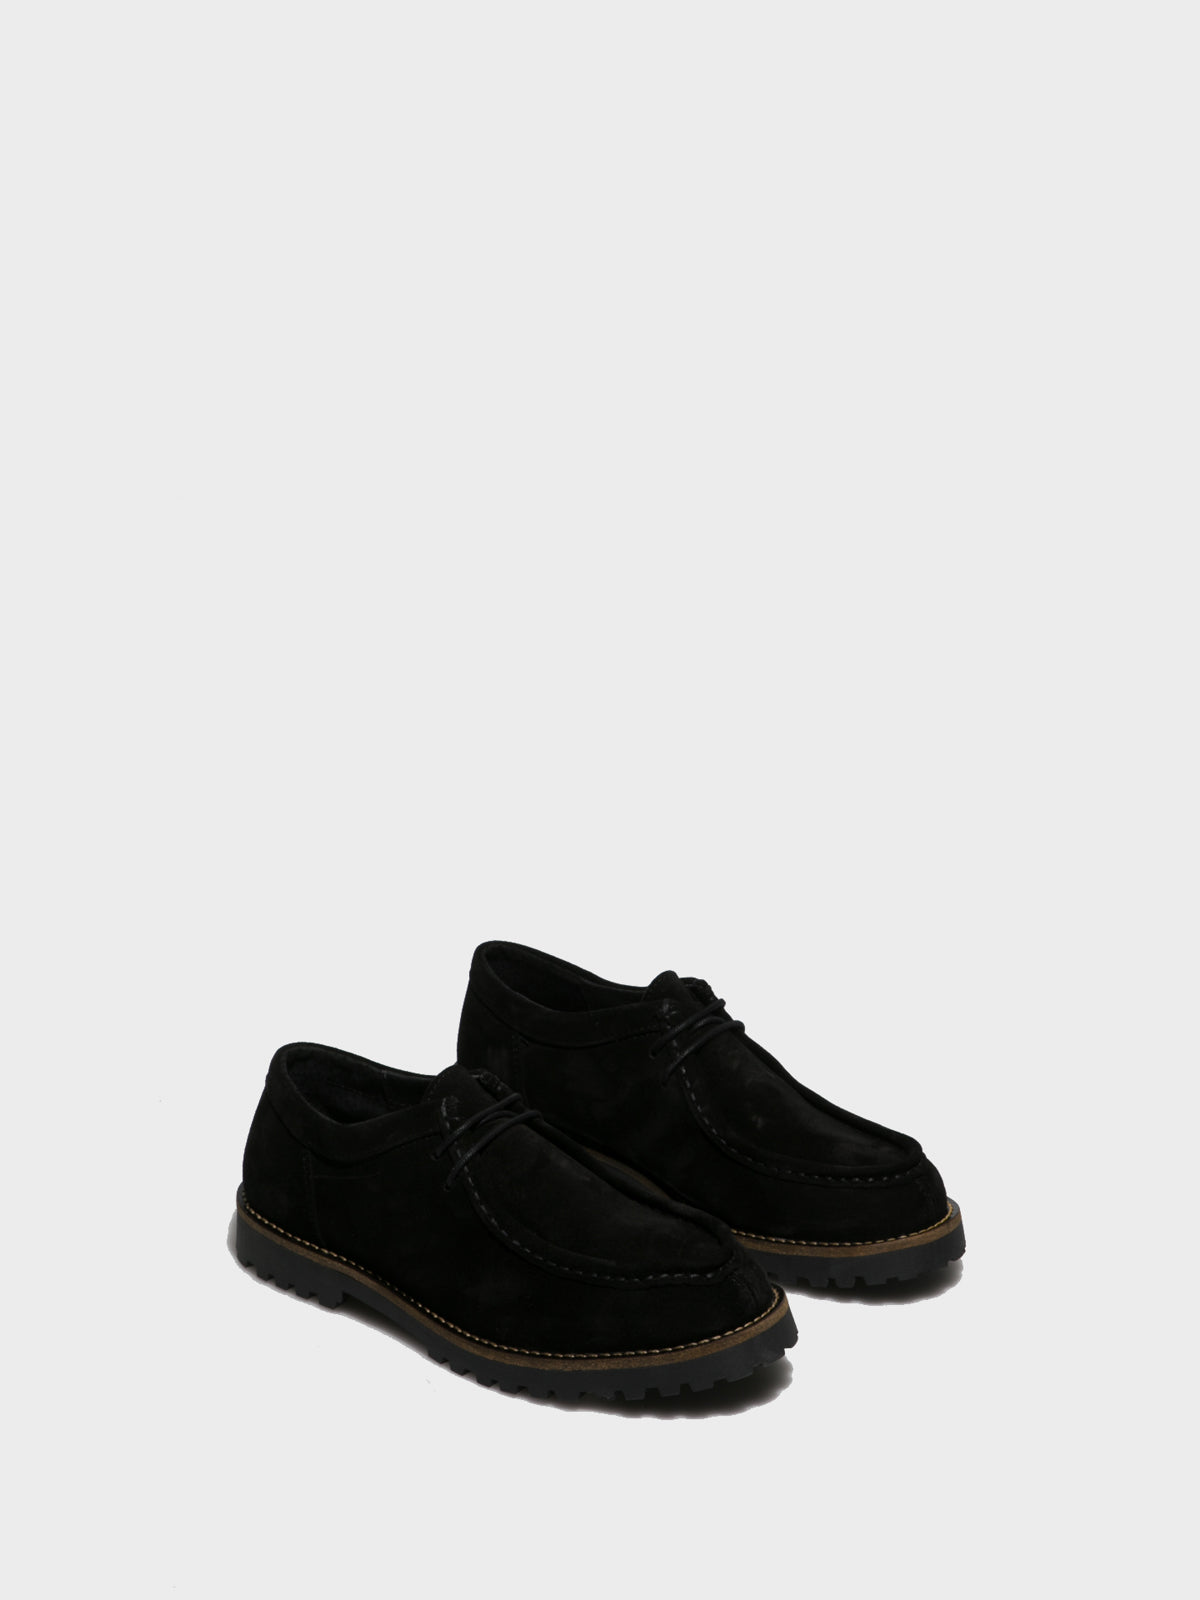 Foreva Black Lace-up Shoes